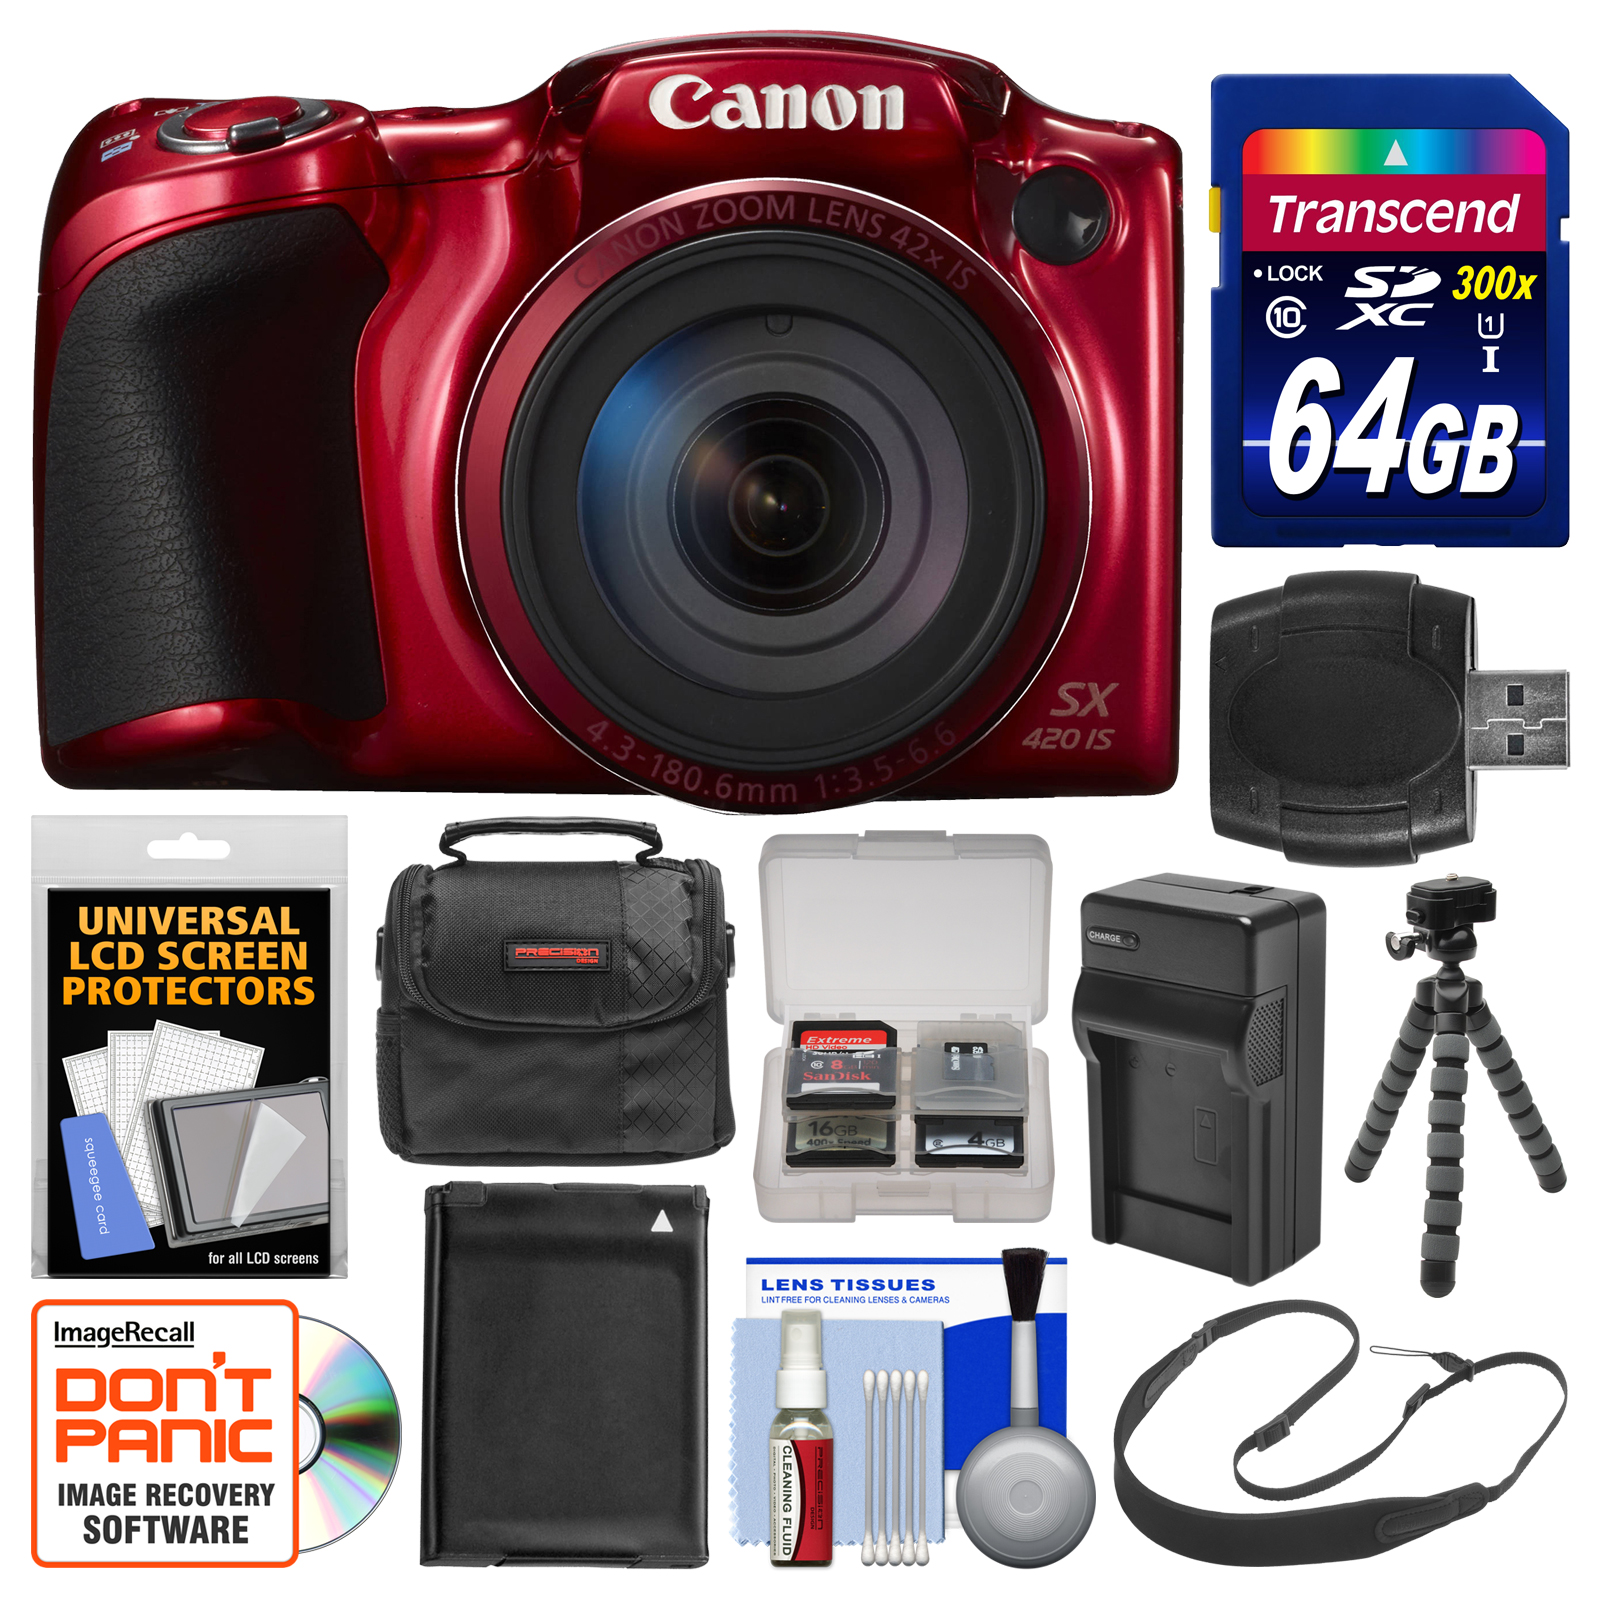 Canon PowerShot SX420 IS Wi-Fi Digital Camera (Red) with ...